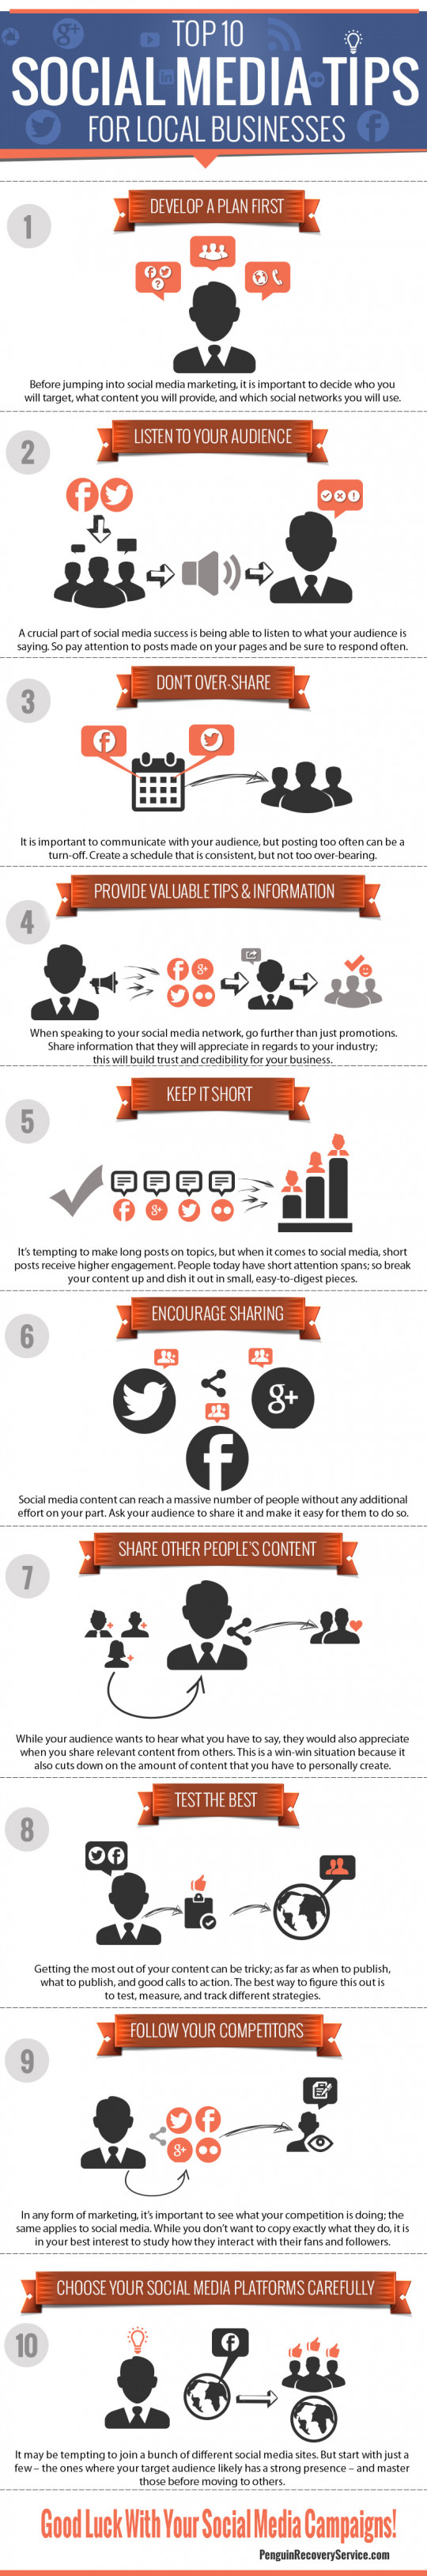 Top 10 Social Media Tips For Local Business